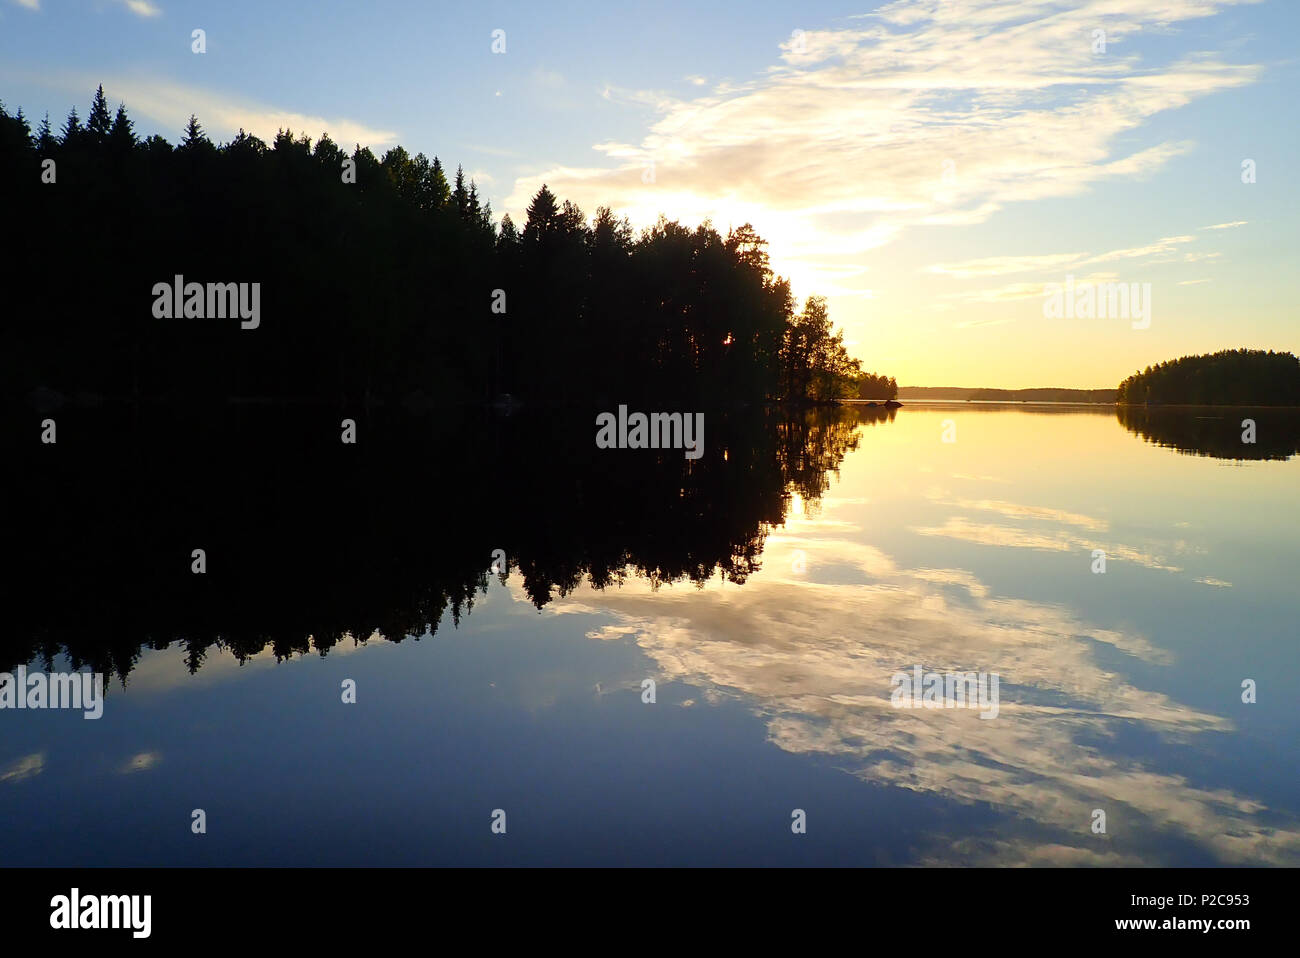 Sunset reflections. Lake Kukkia, Luopioinen, Finland. 24.6.2018 - Stock Image